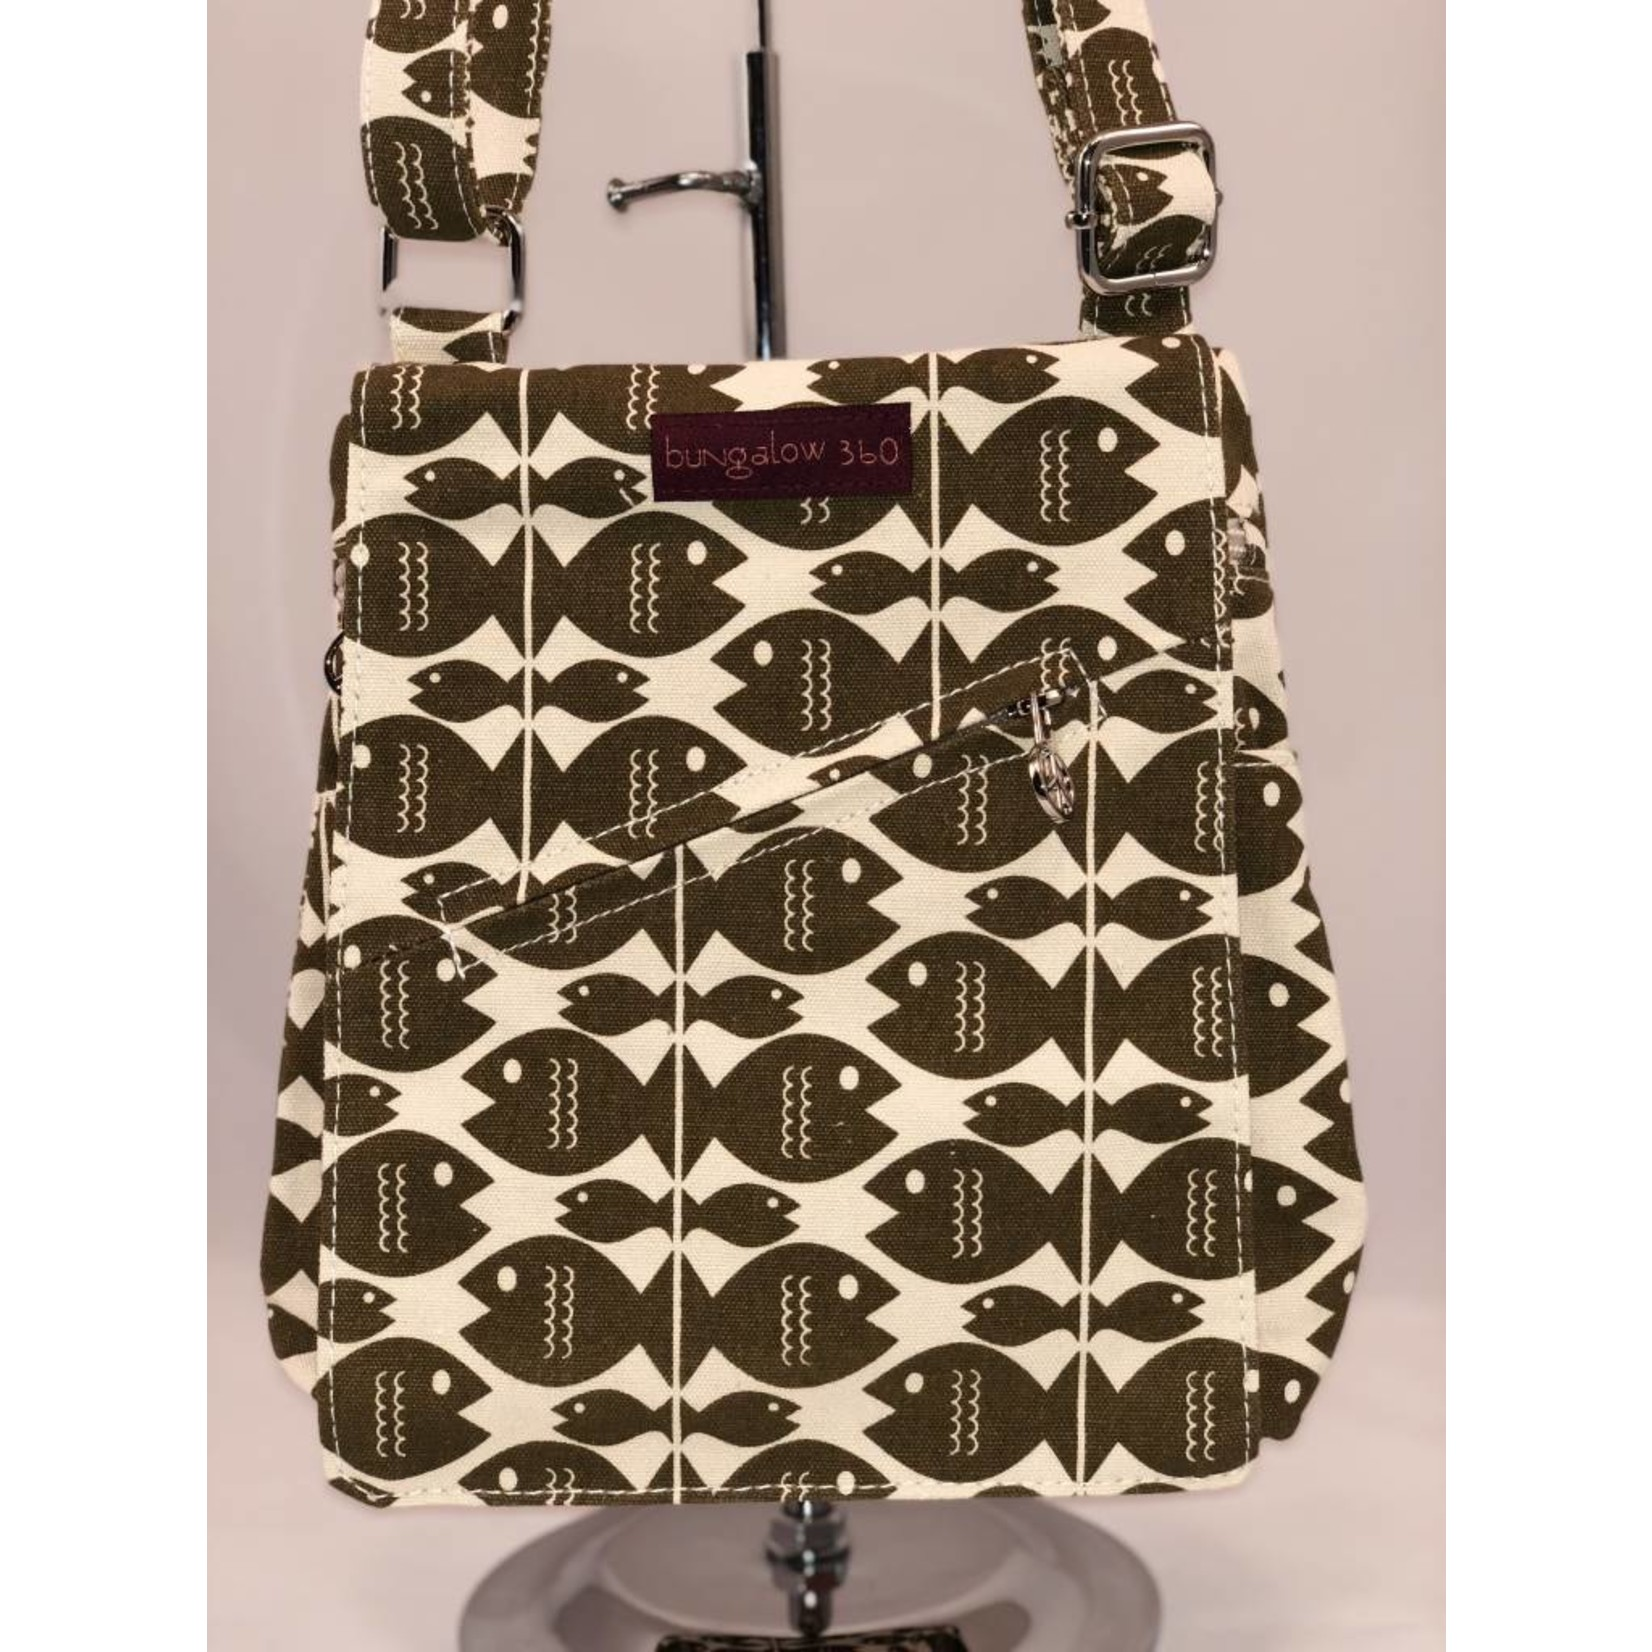 Bungalow 360 Small Messenger Bag - Fish